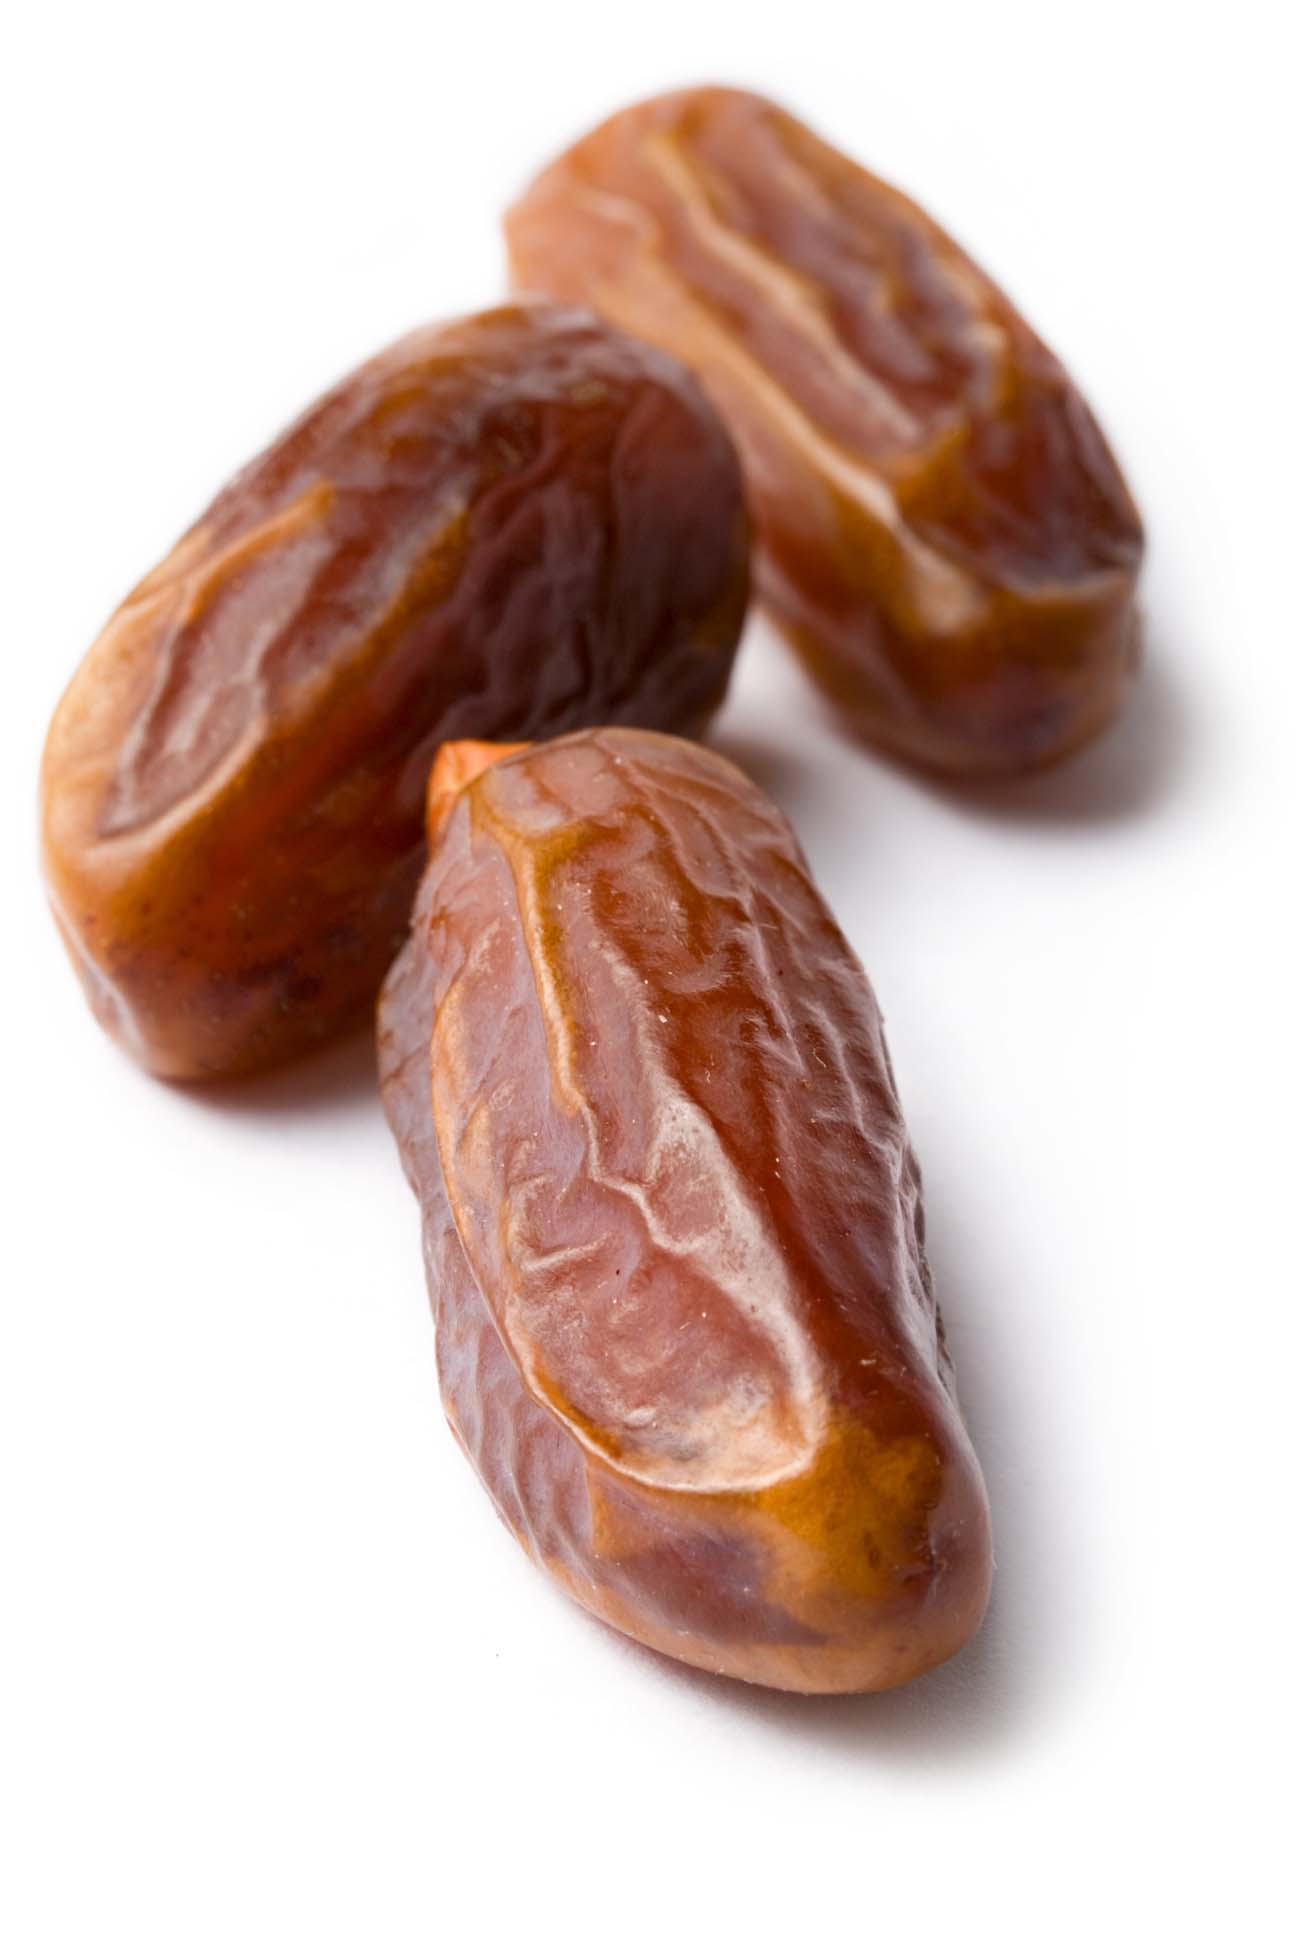 Why eating dates during Ramzan is a great idea